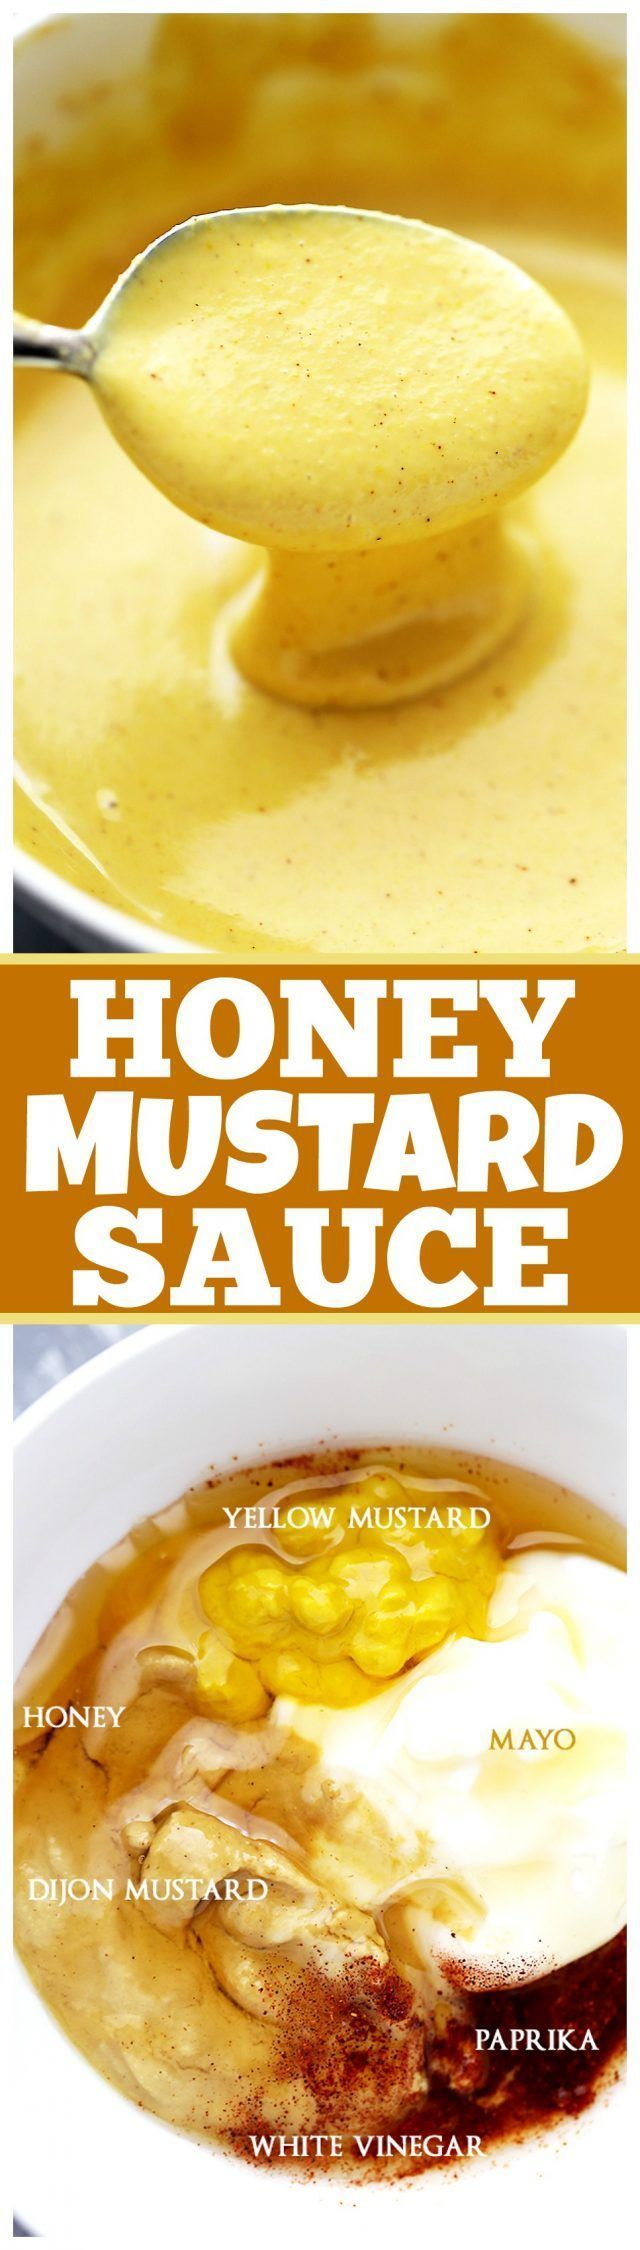 Honey Mustard Sauce Recipe - You are only 6 ingredients away from making your favorite dipping sauce right at home!